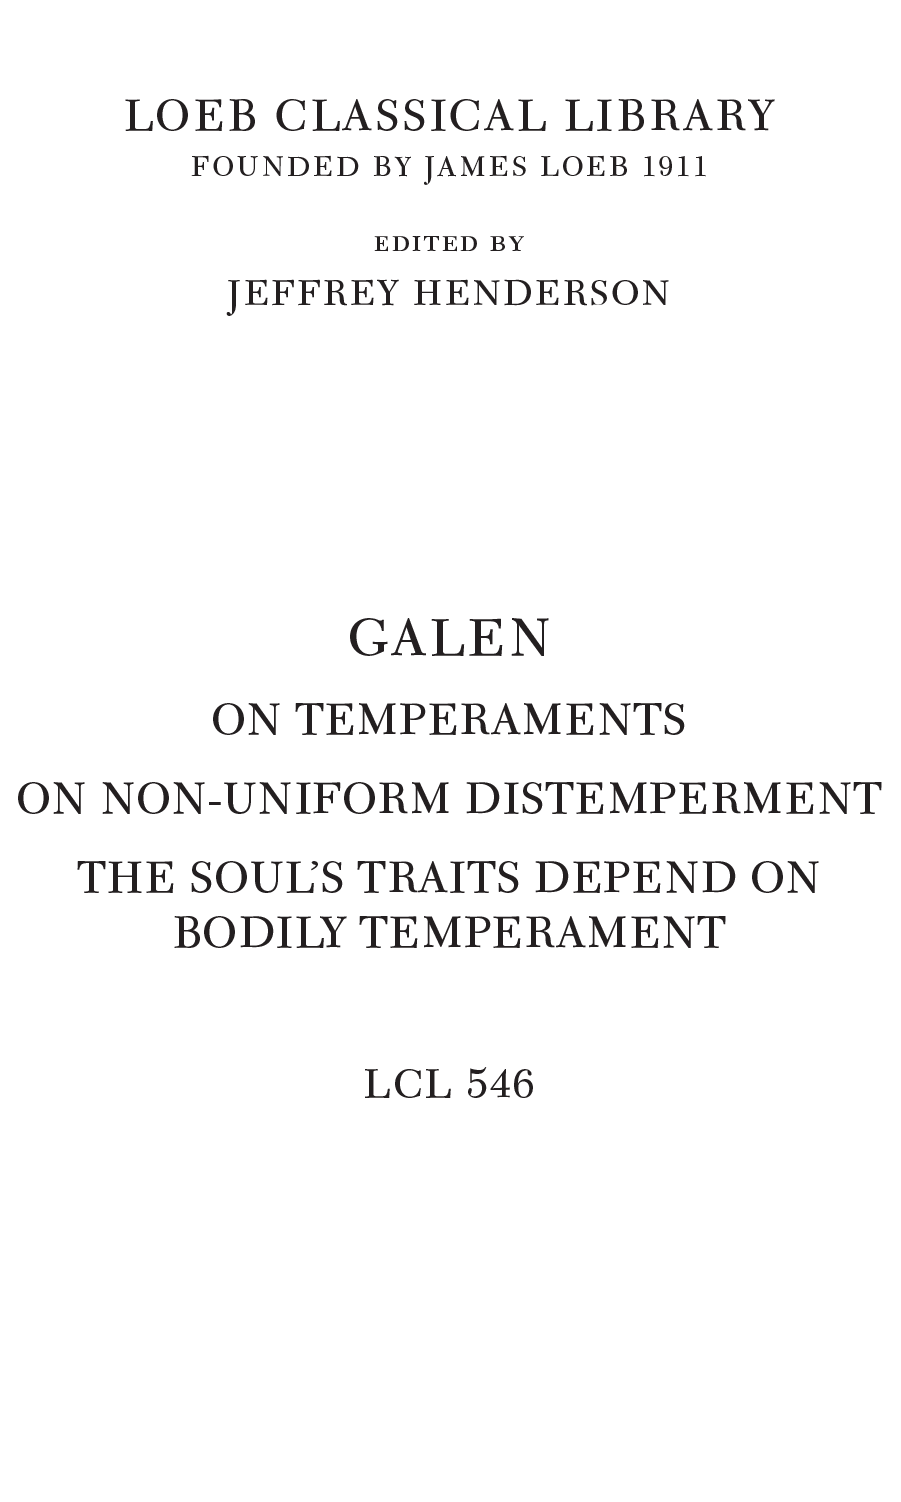 LOEB CLASSICAL LIBRARY FOUNDED BY JAMES LOEB 1911 edited by JEFFREY HENDERSON GALEN ON TEMPERAMENTS ON NON-UNIFORM DISTEMPERMENT THE SOUL'S TRAITS DEPEND ON BODILY TEMPERAMENT LCL 546